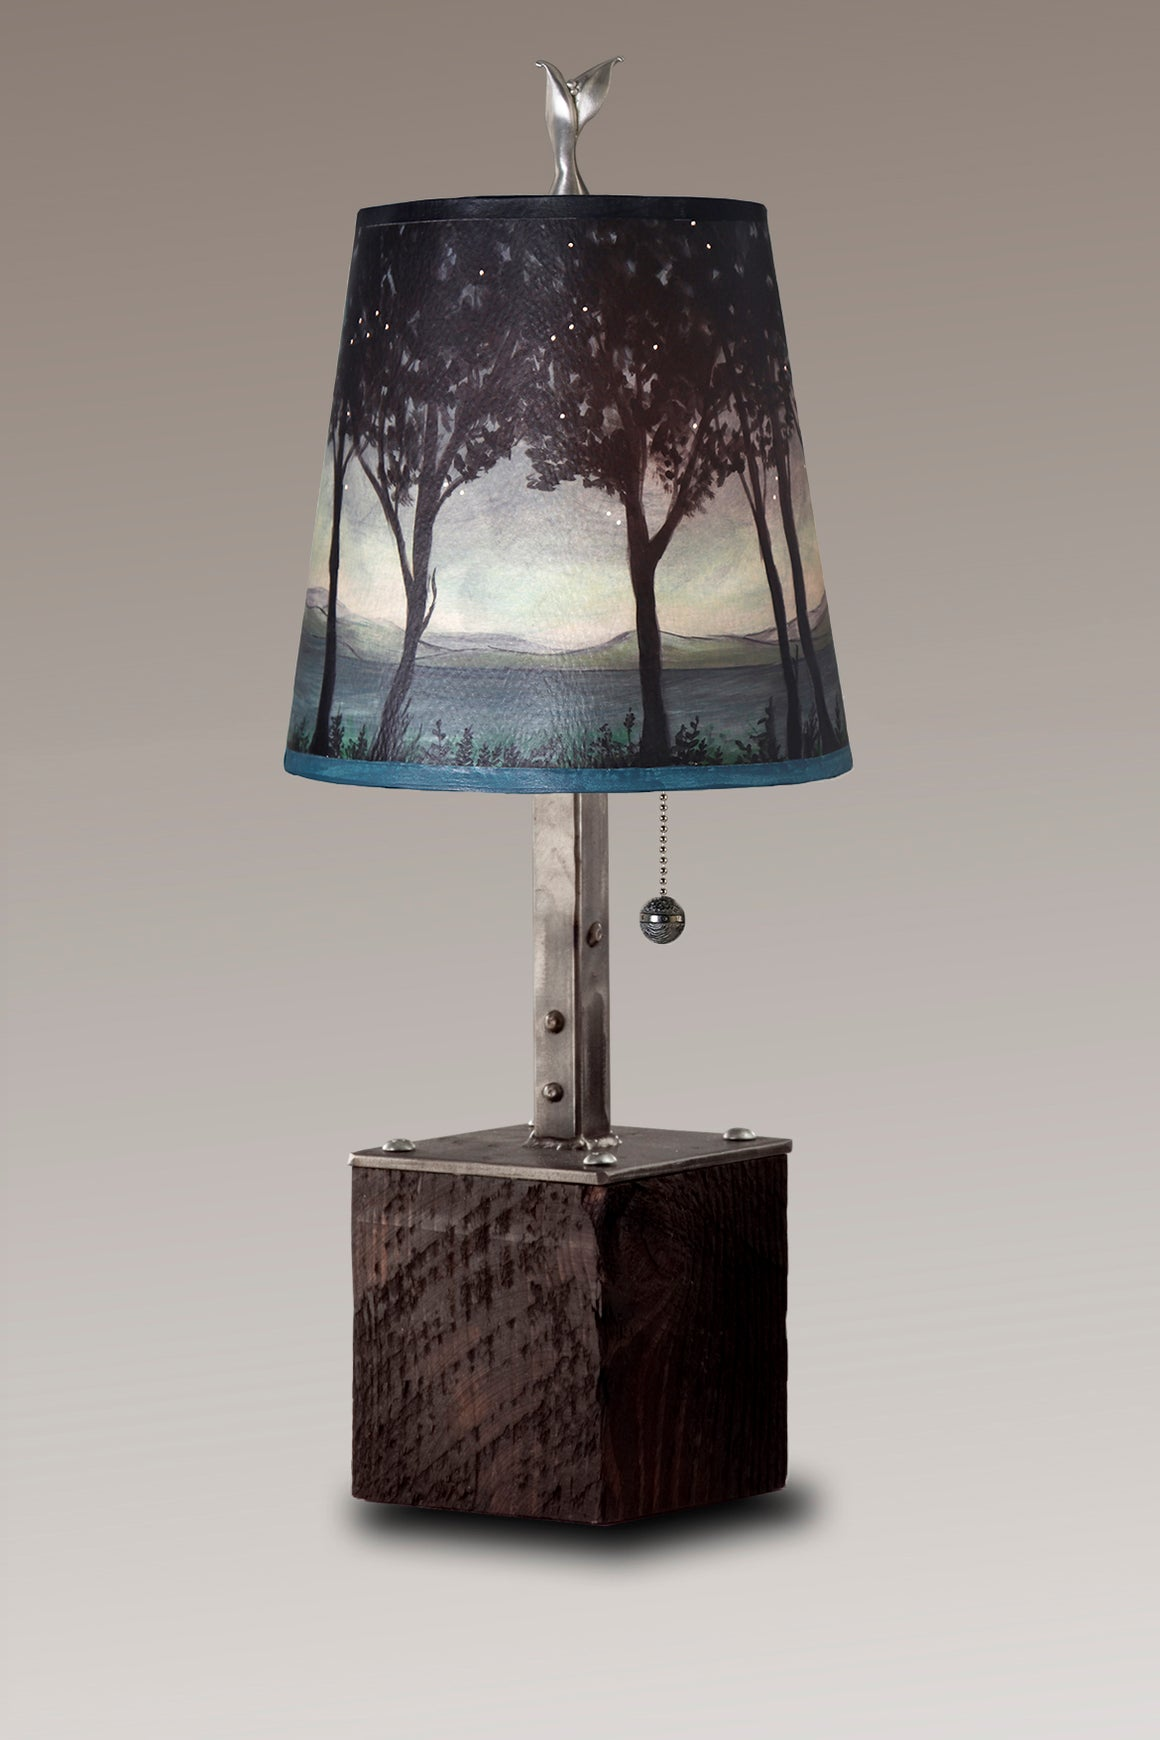 Steel Table Lamp on Reclaimed Wood with Small Drum Shade in Twilight